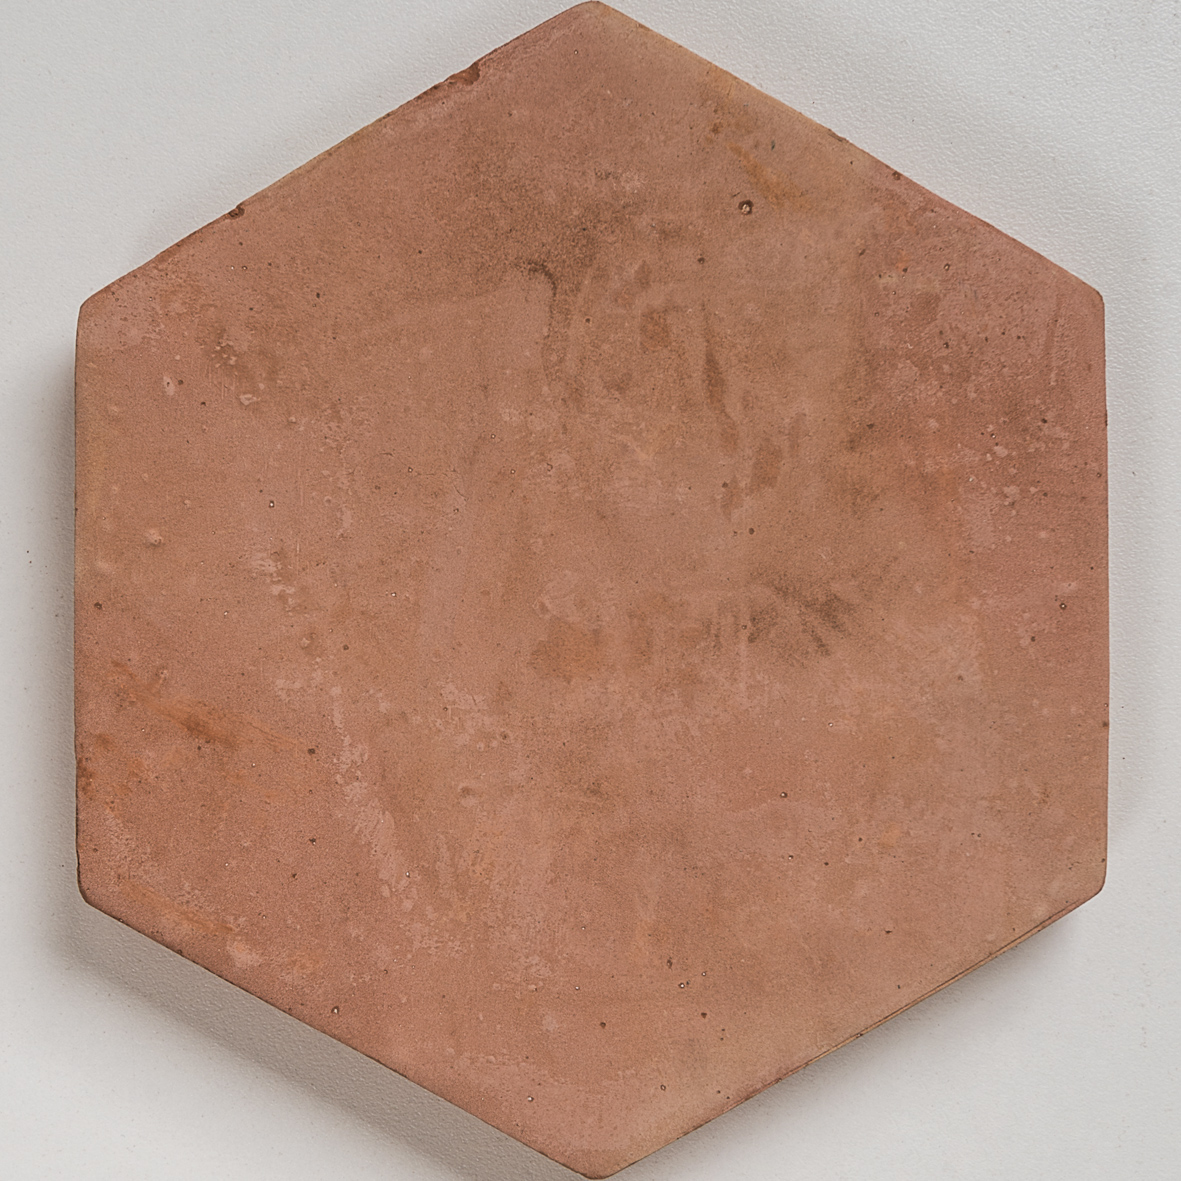 Handmade terracotta floor tiles images tile flooring design ideas hexagon terracotta floor tiles choice image tile flooring design handmade terracotta floor tiles image collections tile doublecrazyfo Image collections